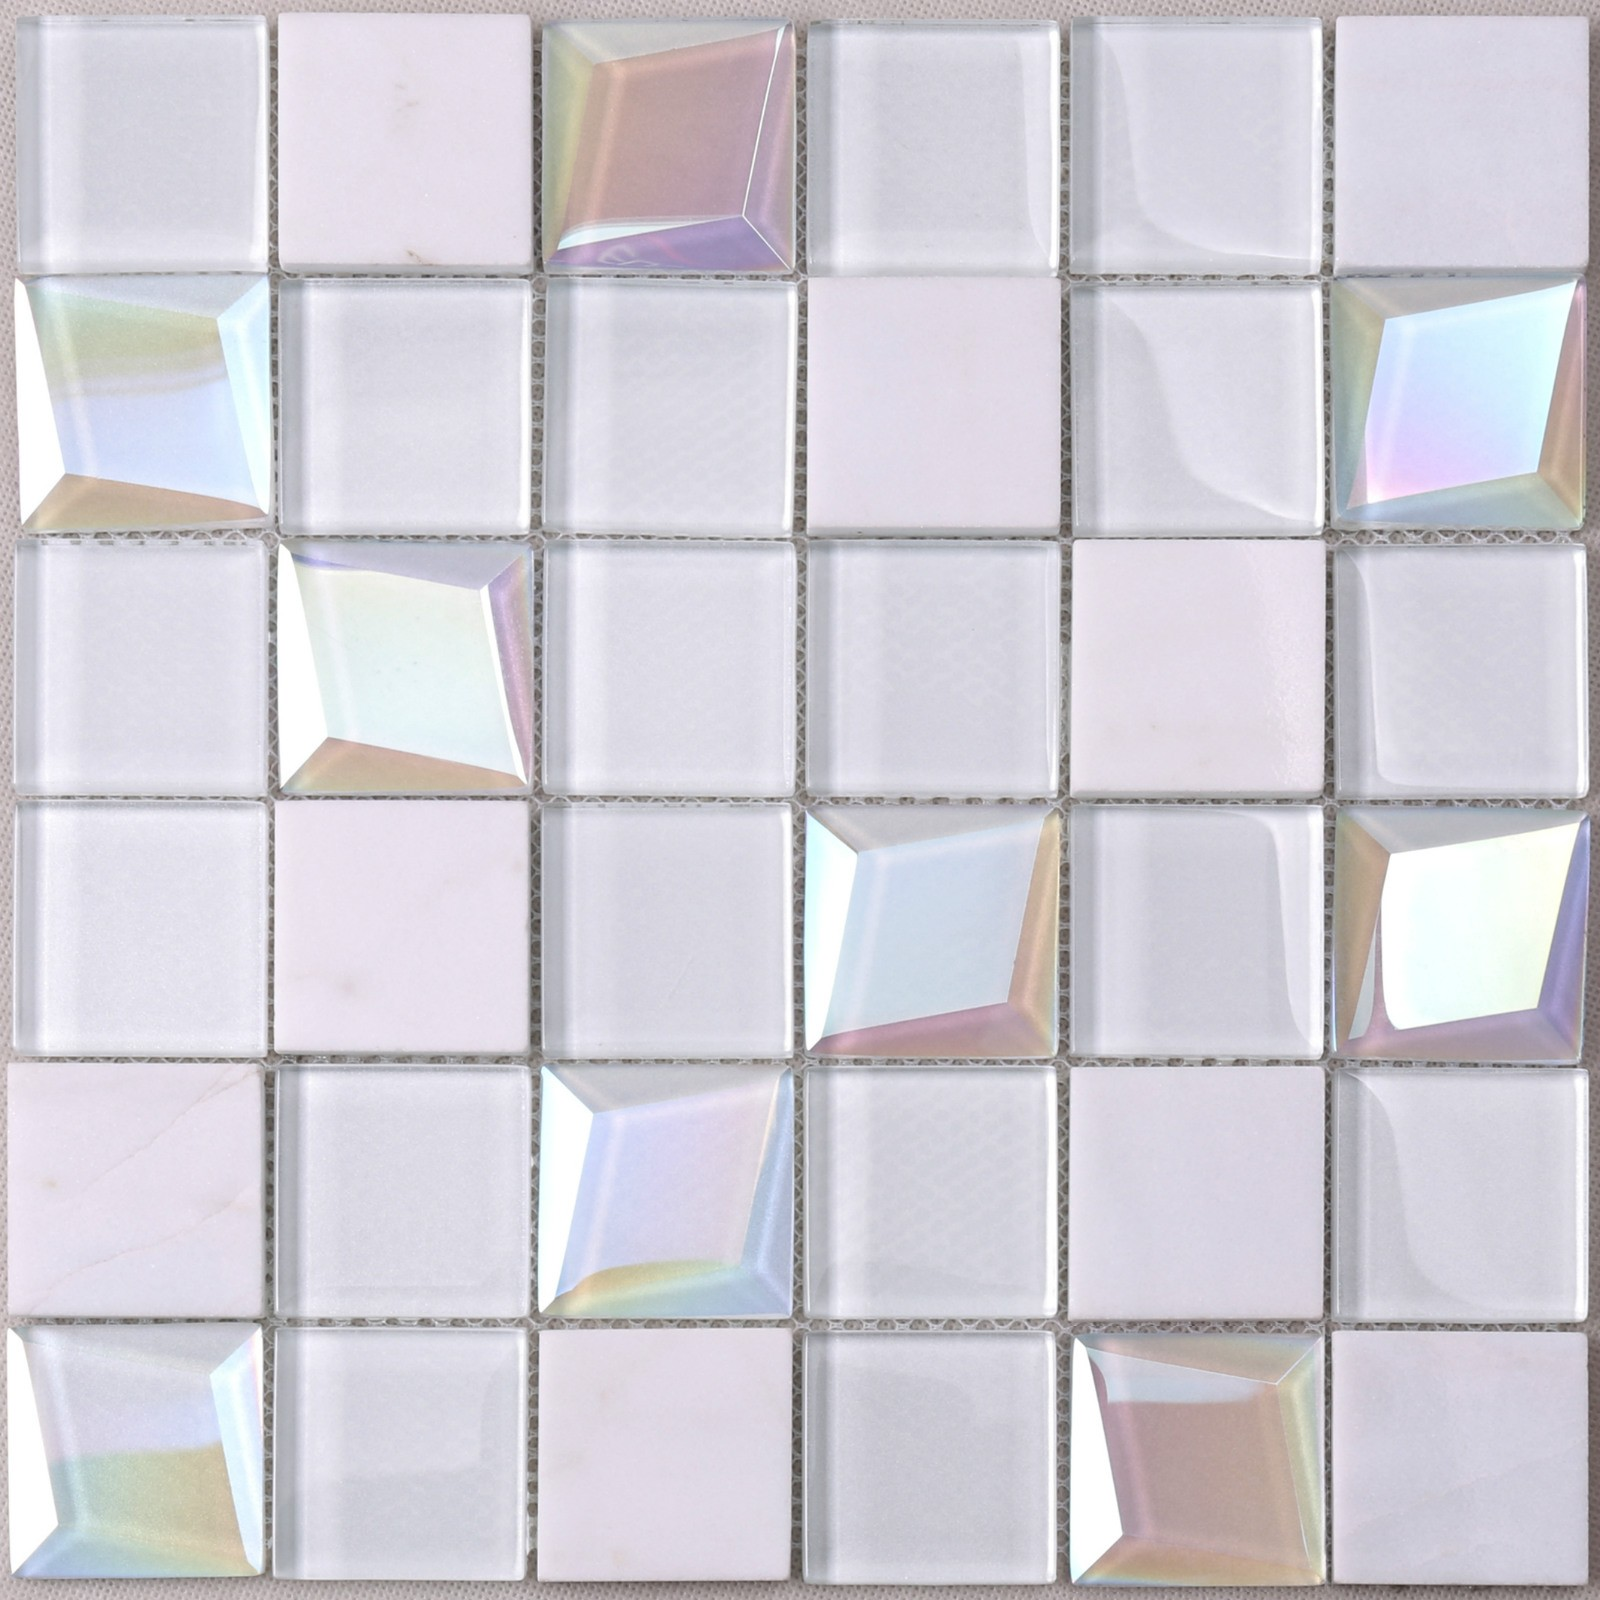 Heng Xing-Oem Black Glass Tile Manufacturer | Glass Mosaic Tile